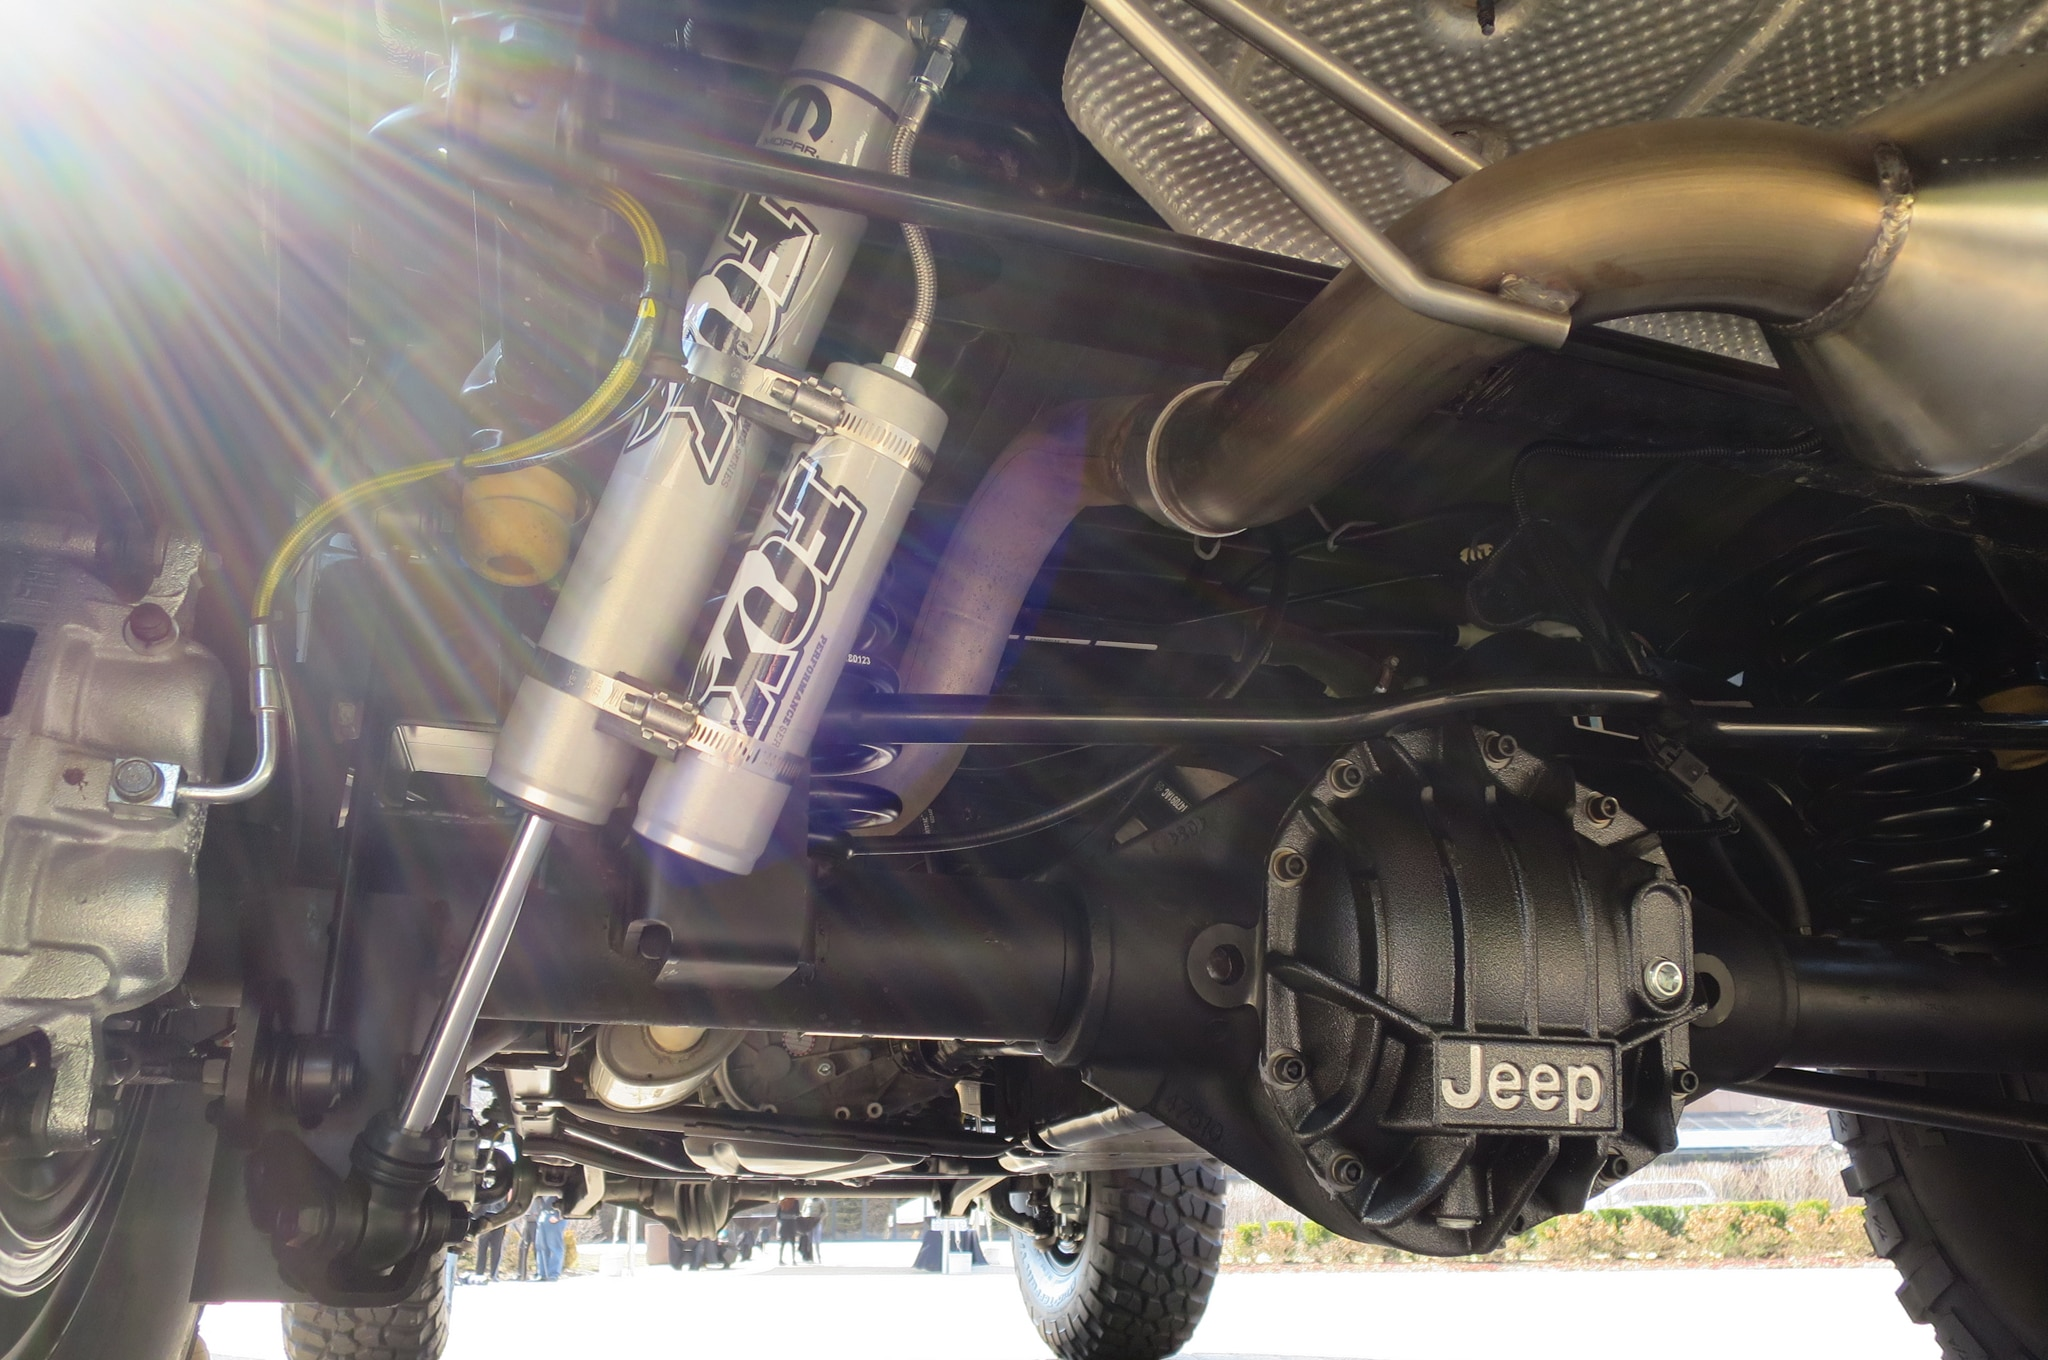 Jeep Wrangler Maximum Performance Concept shocks axle